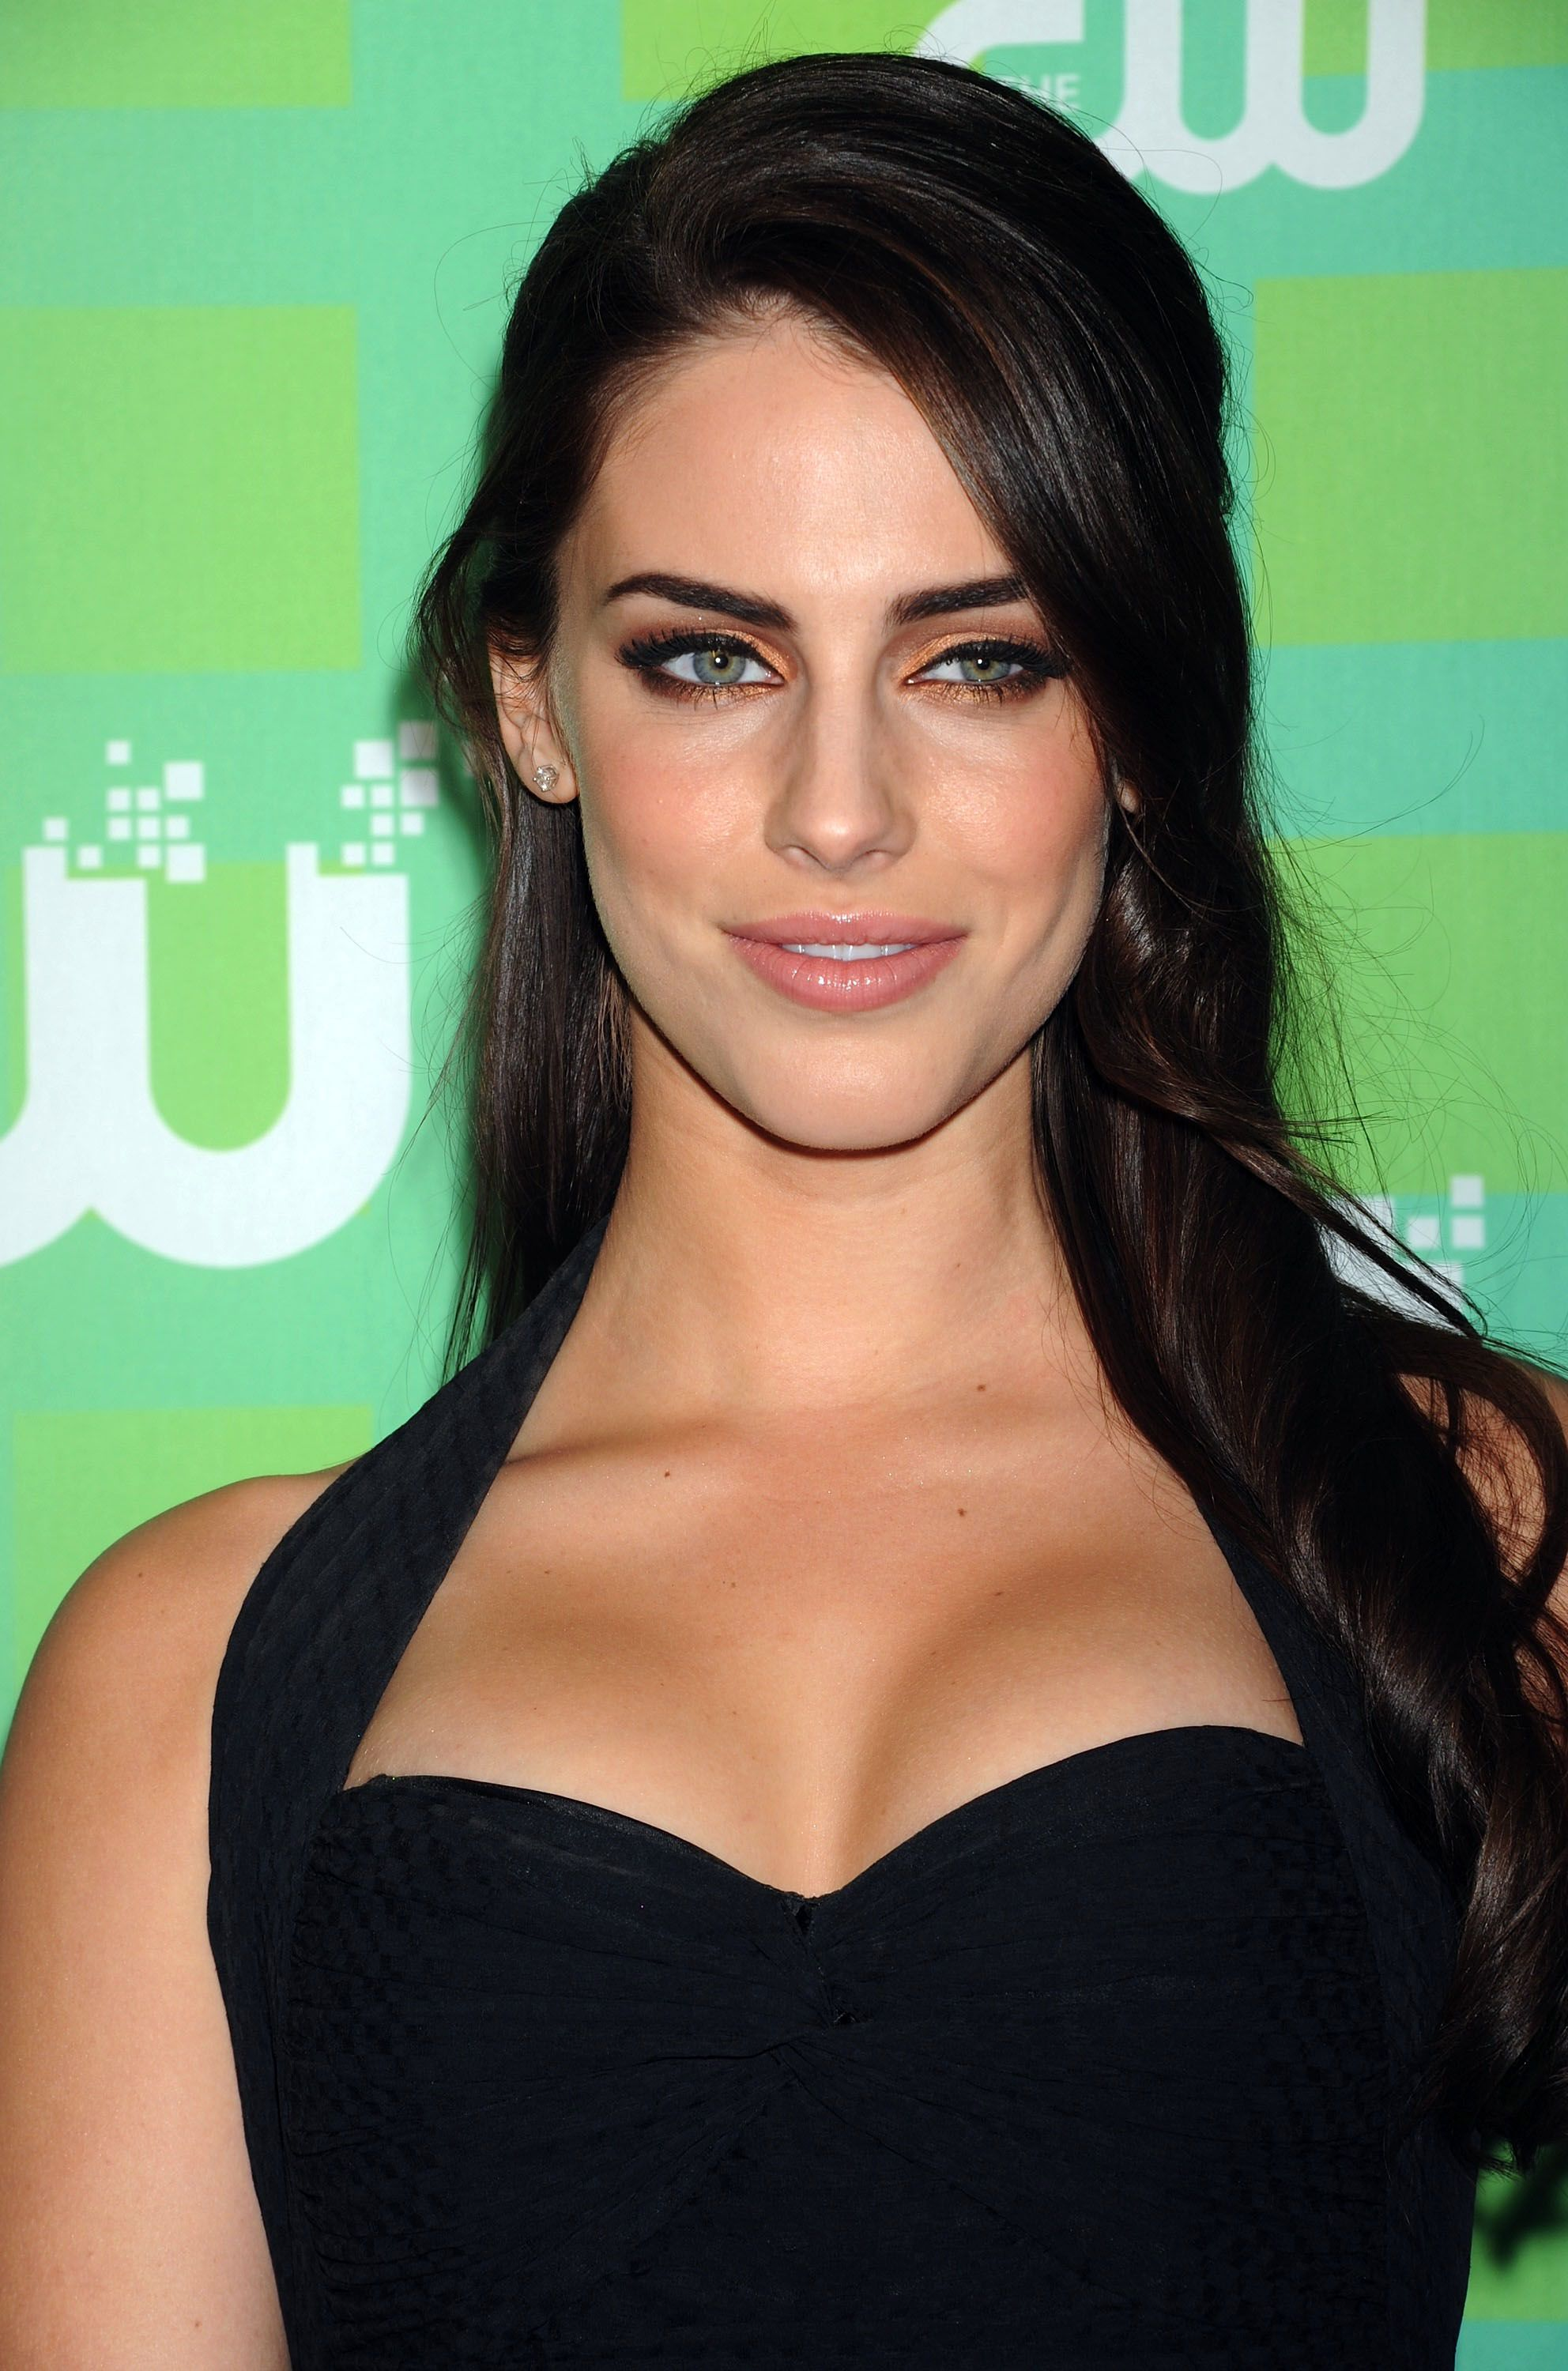 Jessica Lowndes Check eye cream reviews on social media